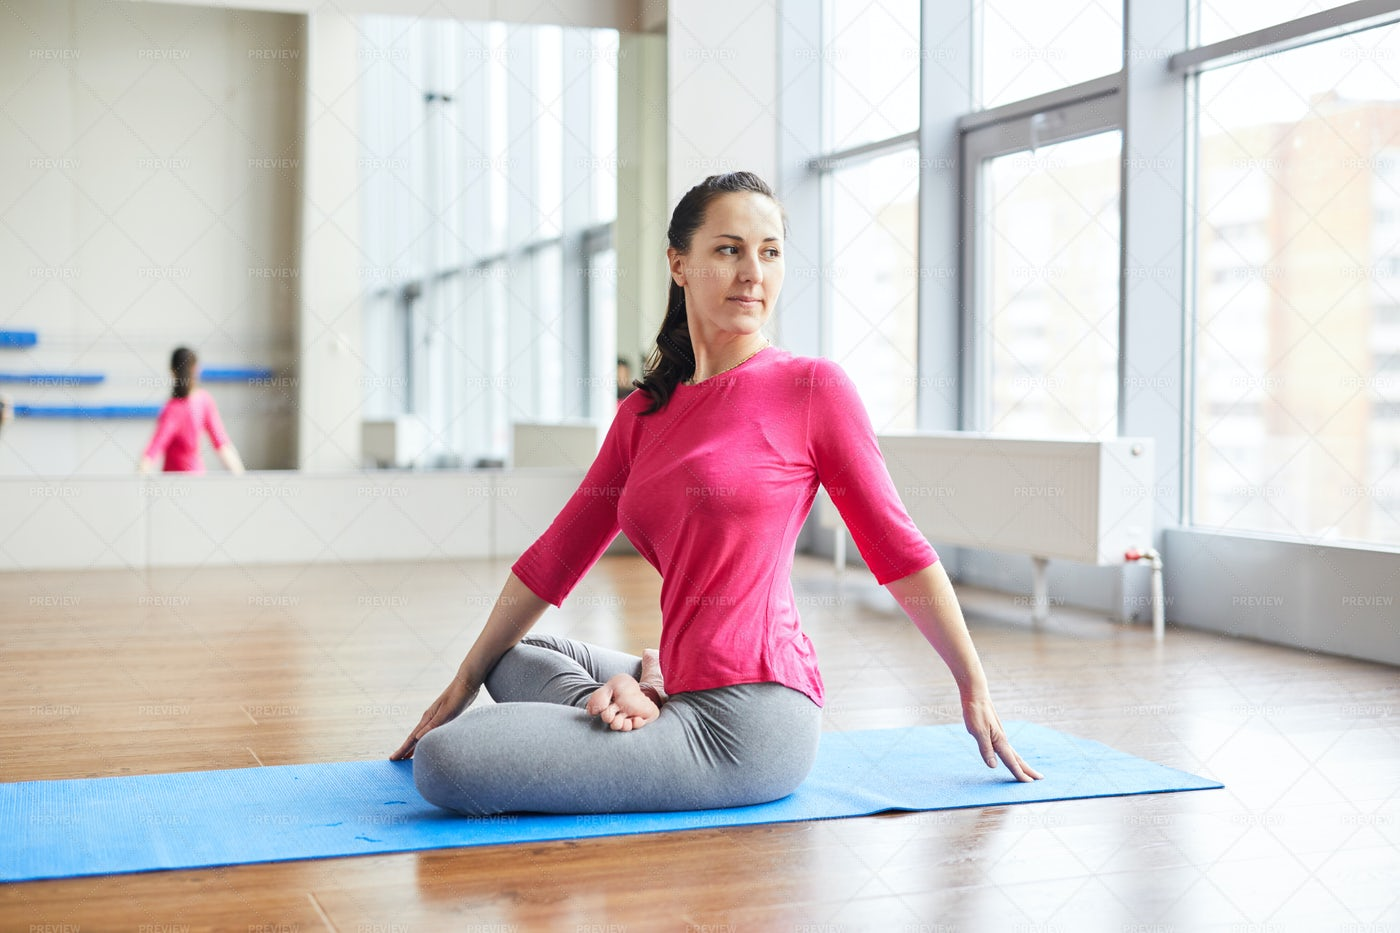 Twisting Body While Practicing Yoga: Stock Photos